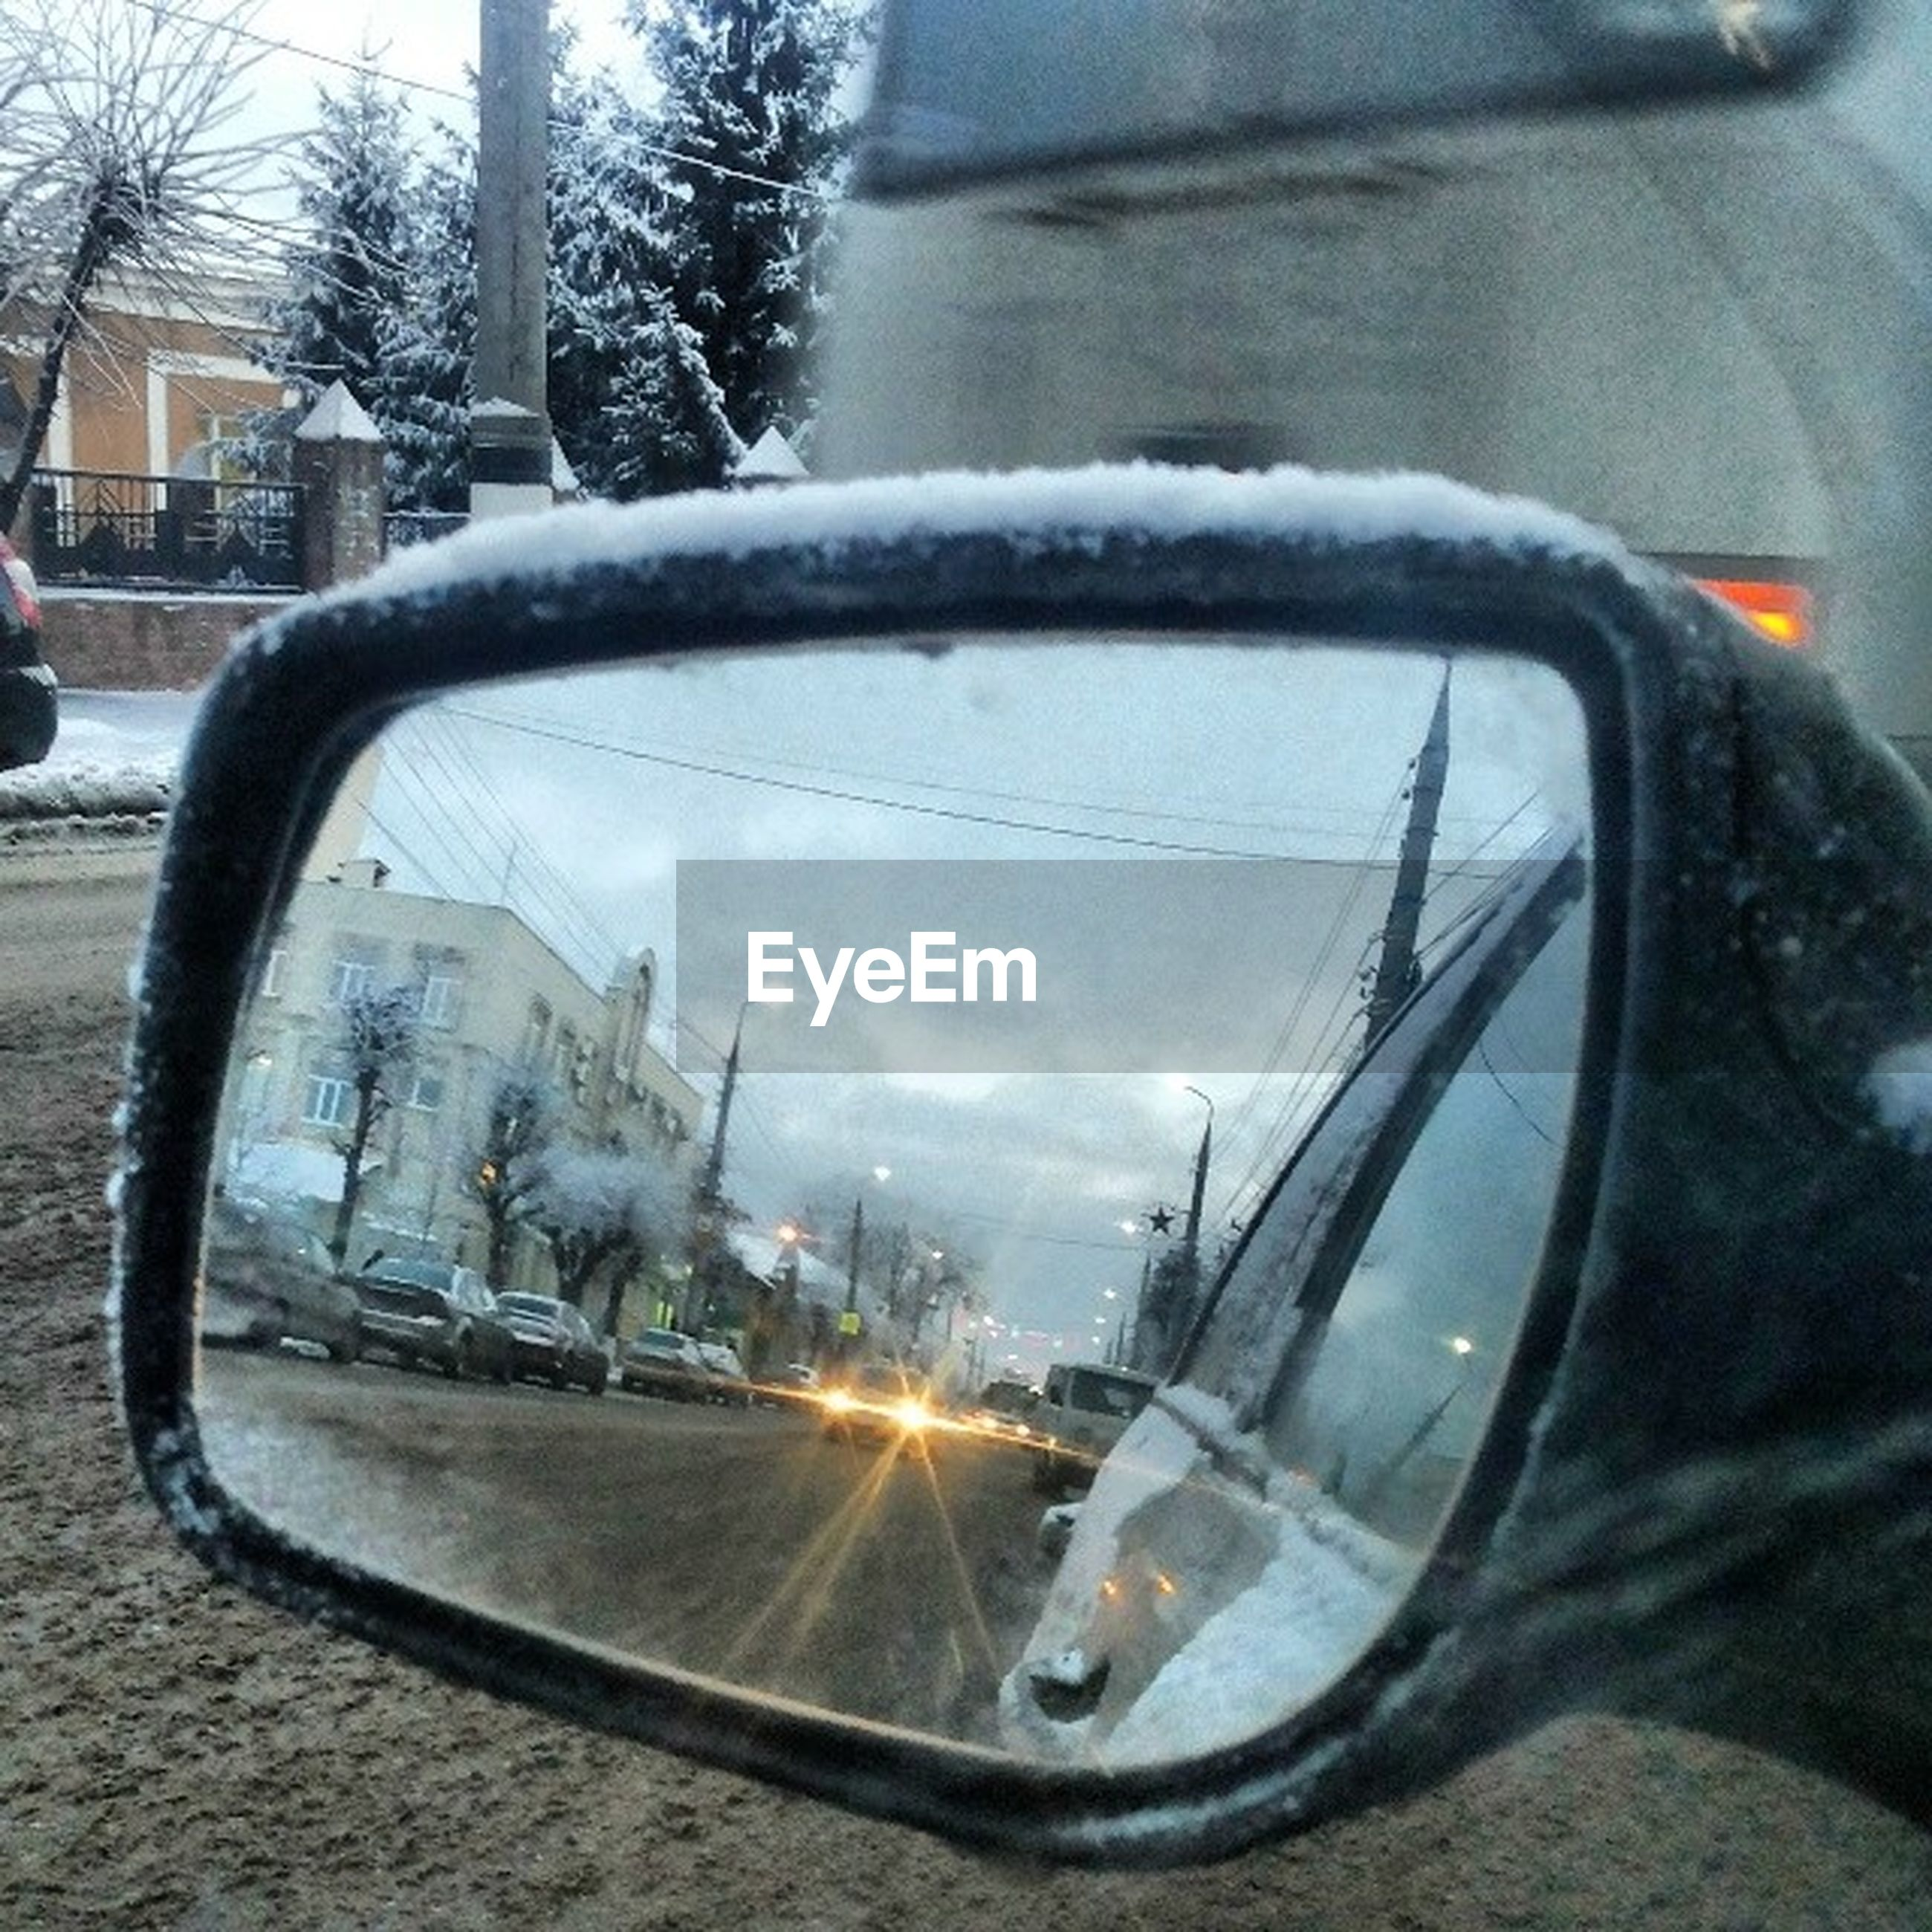 transportation, mode of transport, land vehicle, car, side-view mirror, street, road, reflection, travel, on the move, stationary, sky, vehicle interior, part of, tree, vehicle, bicycle, car interior, cropped, windshield